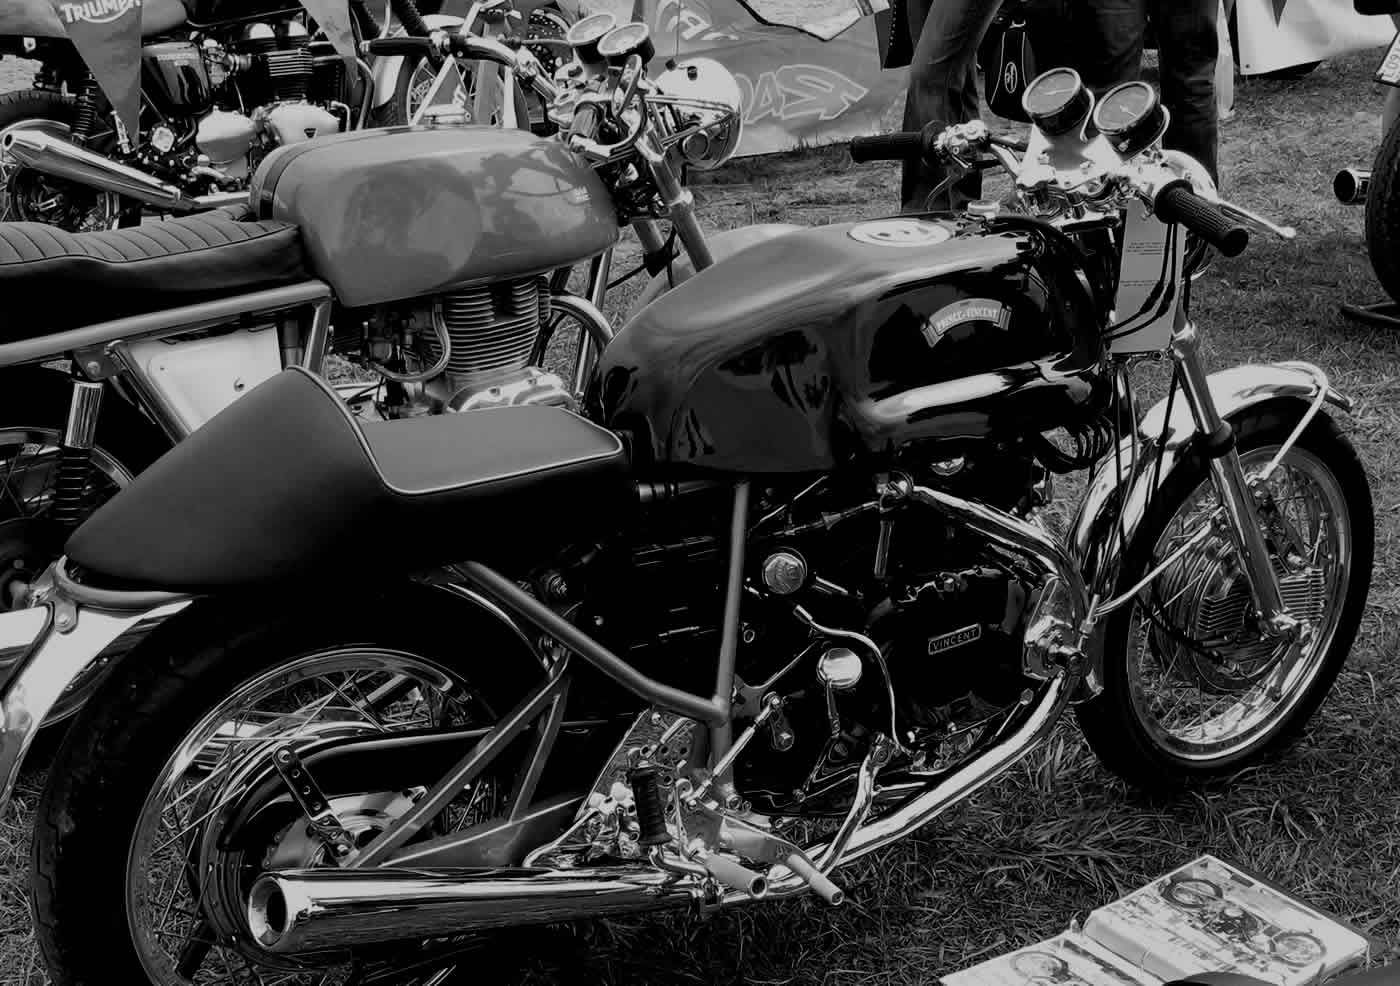 16 cylinder h16 engine to power new motorcycle under construction by rh pinterest com